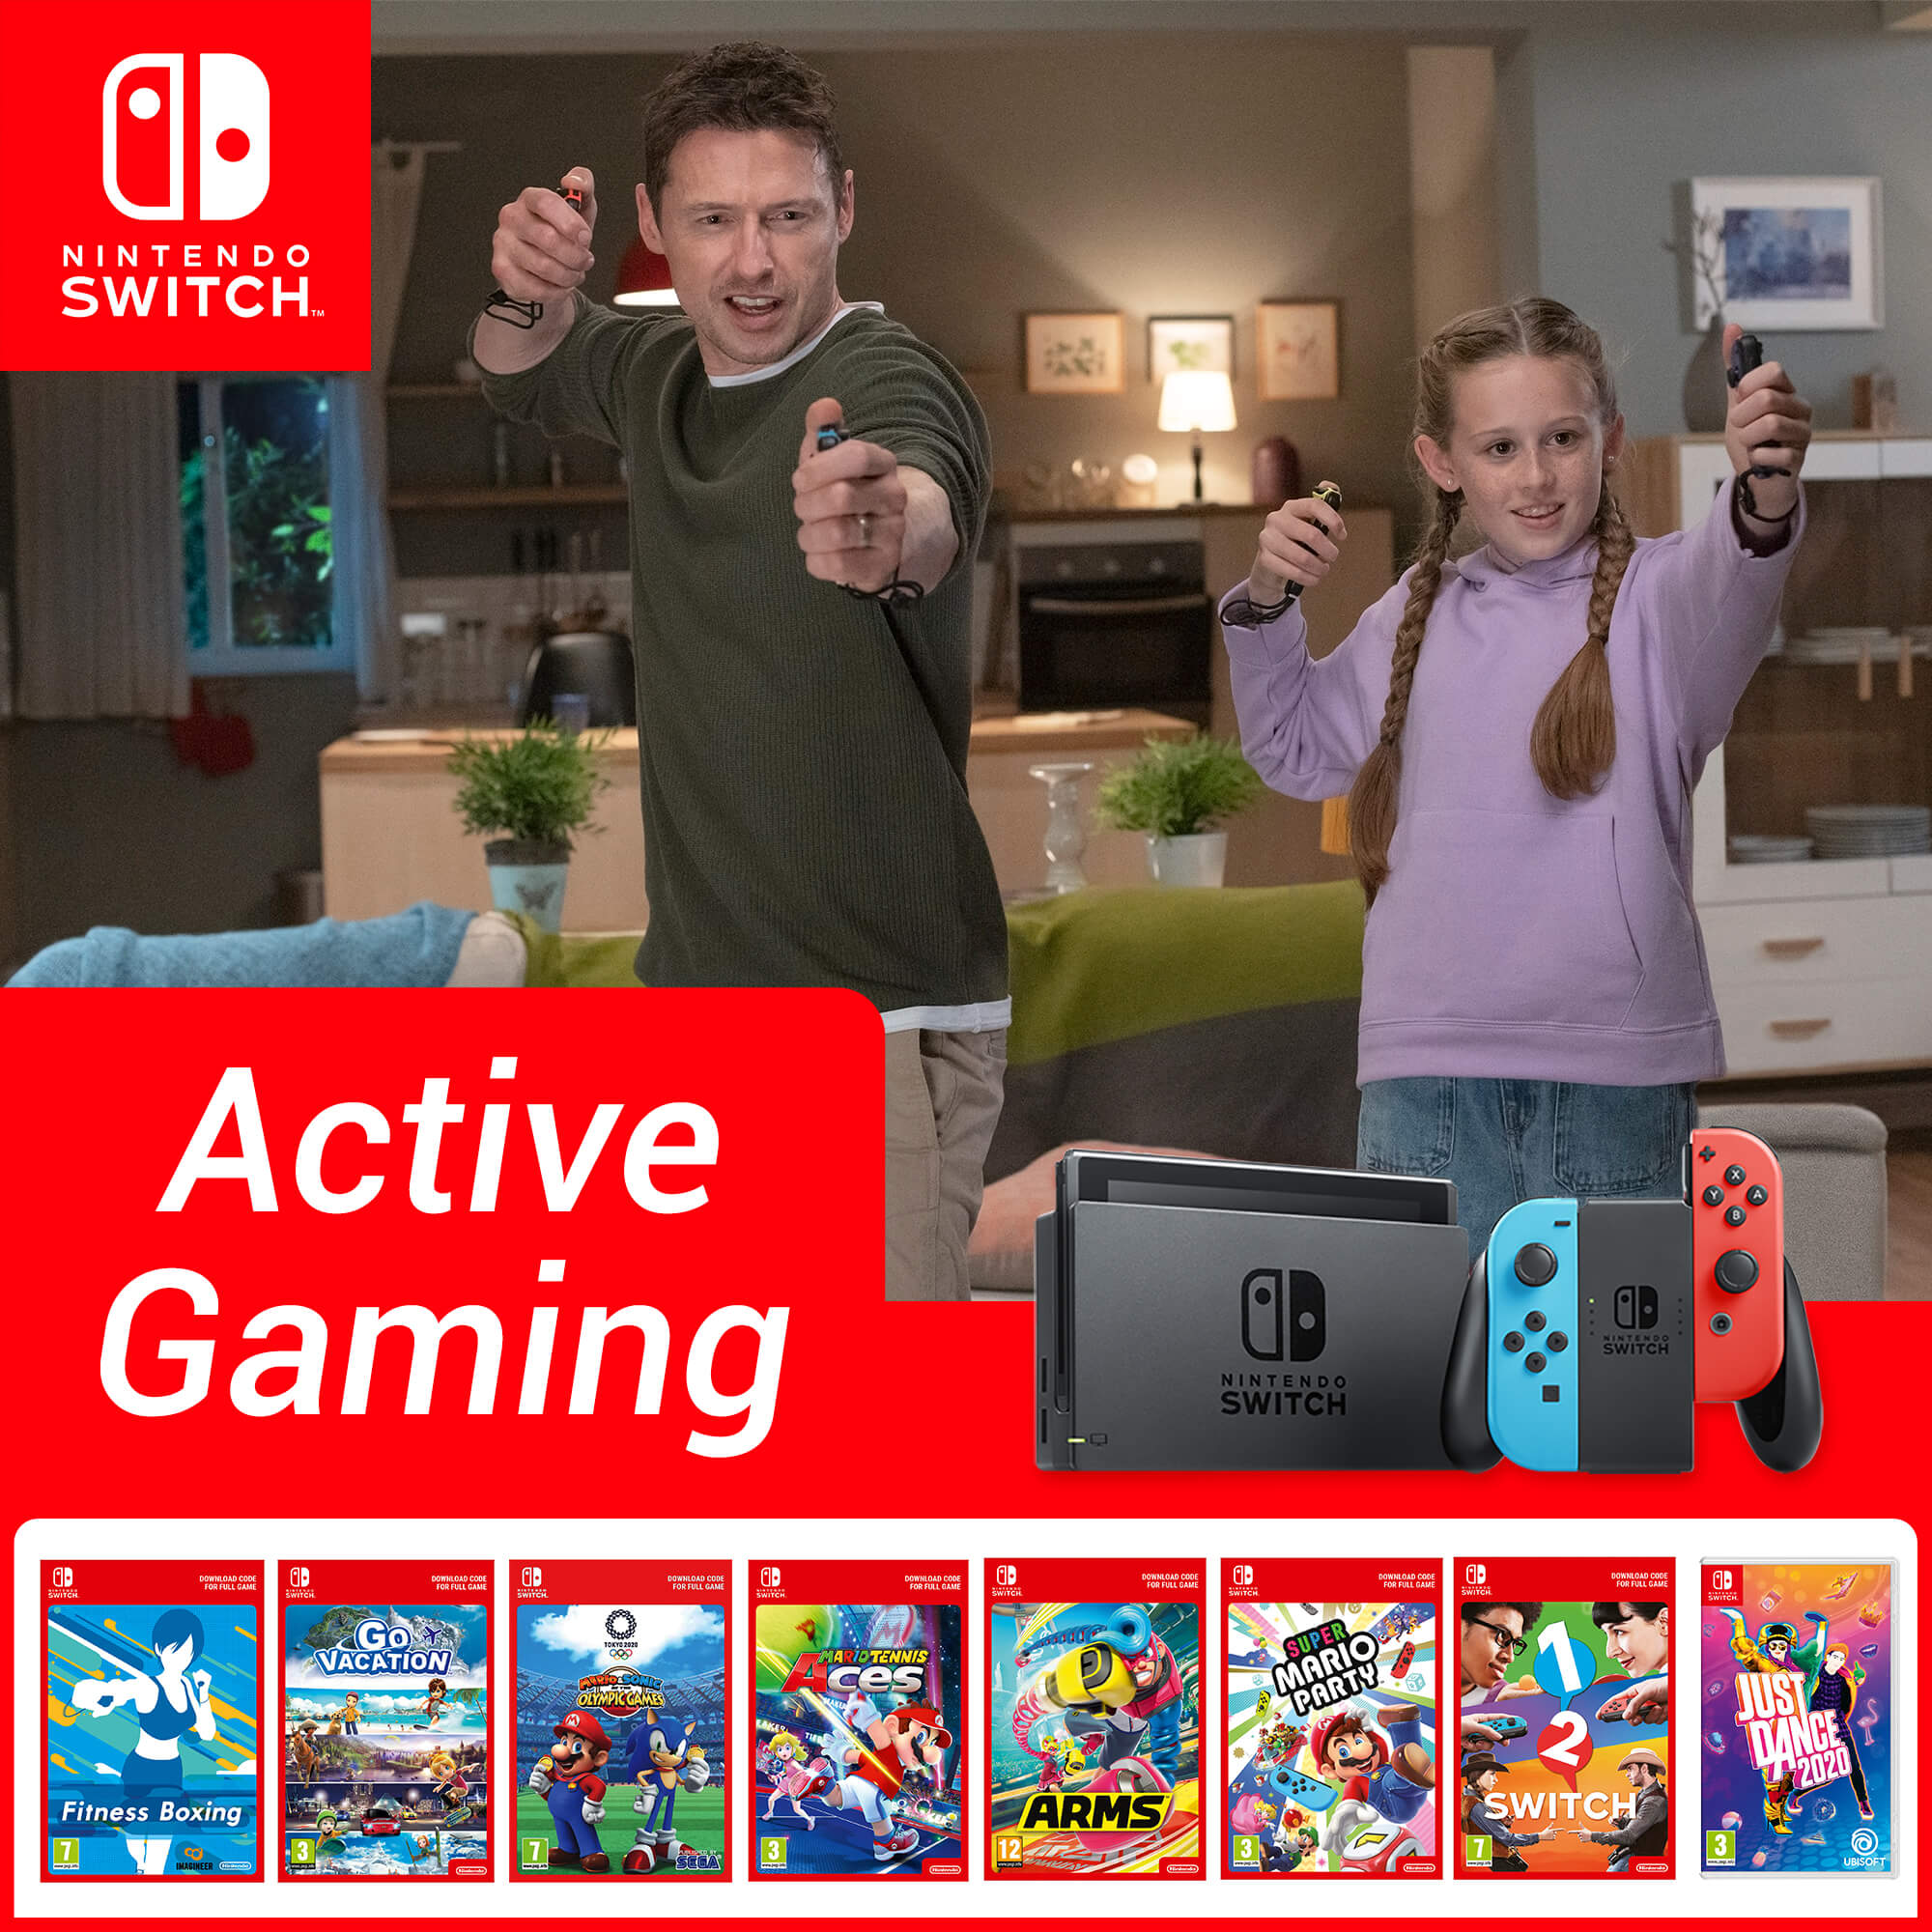 Active Gaming with Nintendo Switch